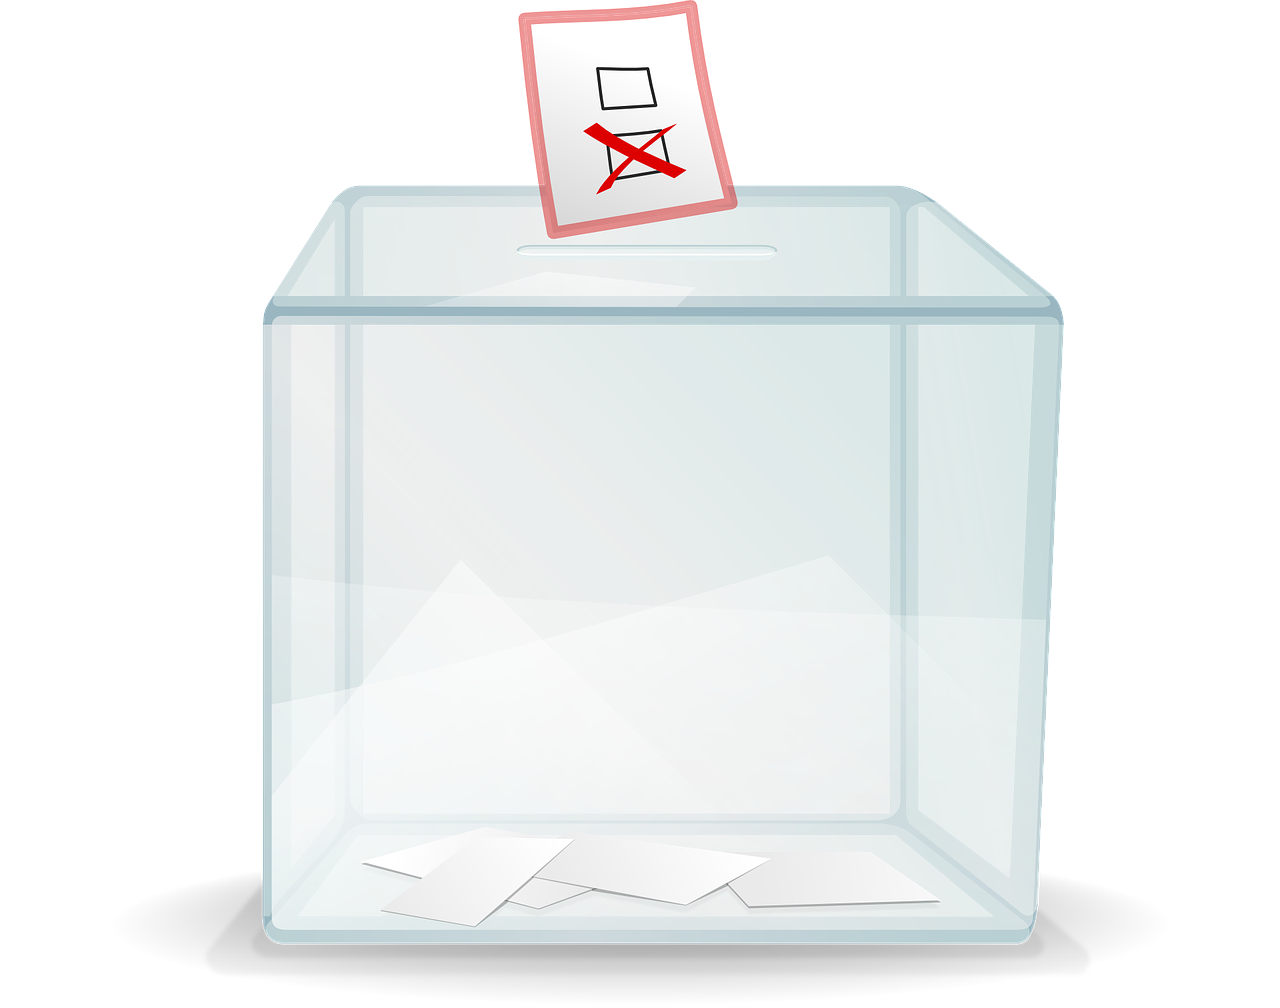 A ballot box with votes